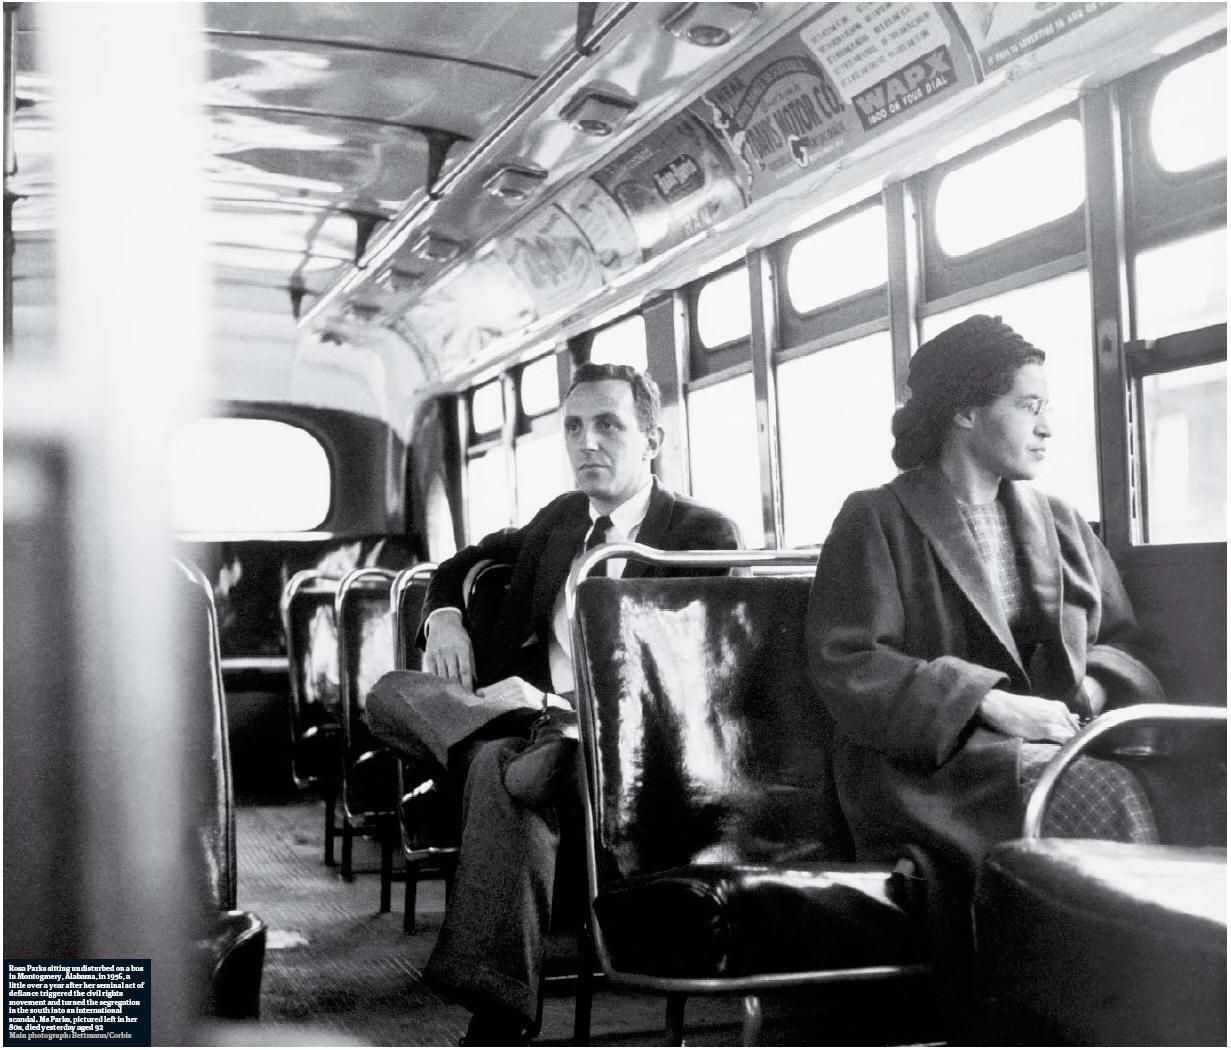 http://atlantablackstar.com/2014/11/28/10-reasons-montgomery-bus-boycott-is-one-of-greatest-examples-of-collective-black-power-in-u-s-history/rosa-parks-5/